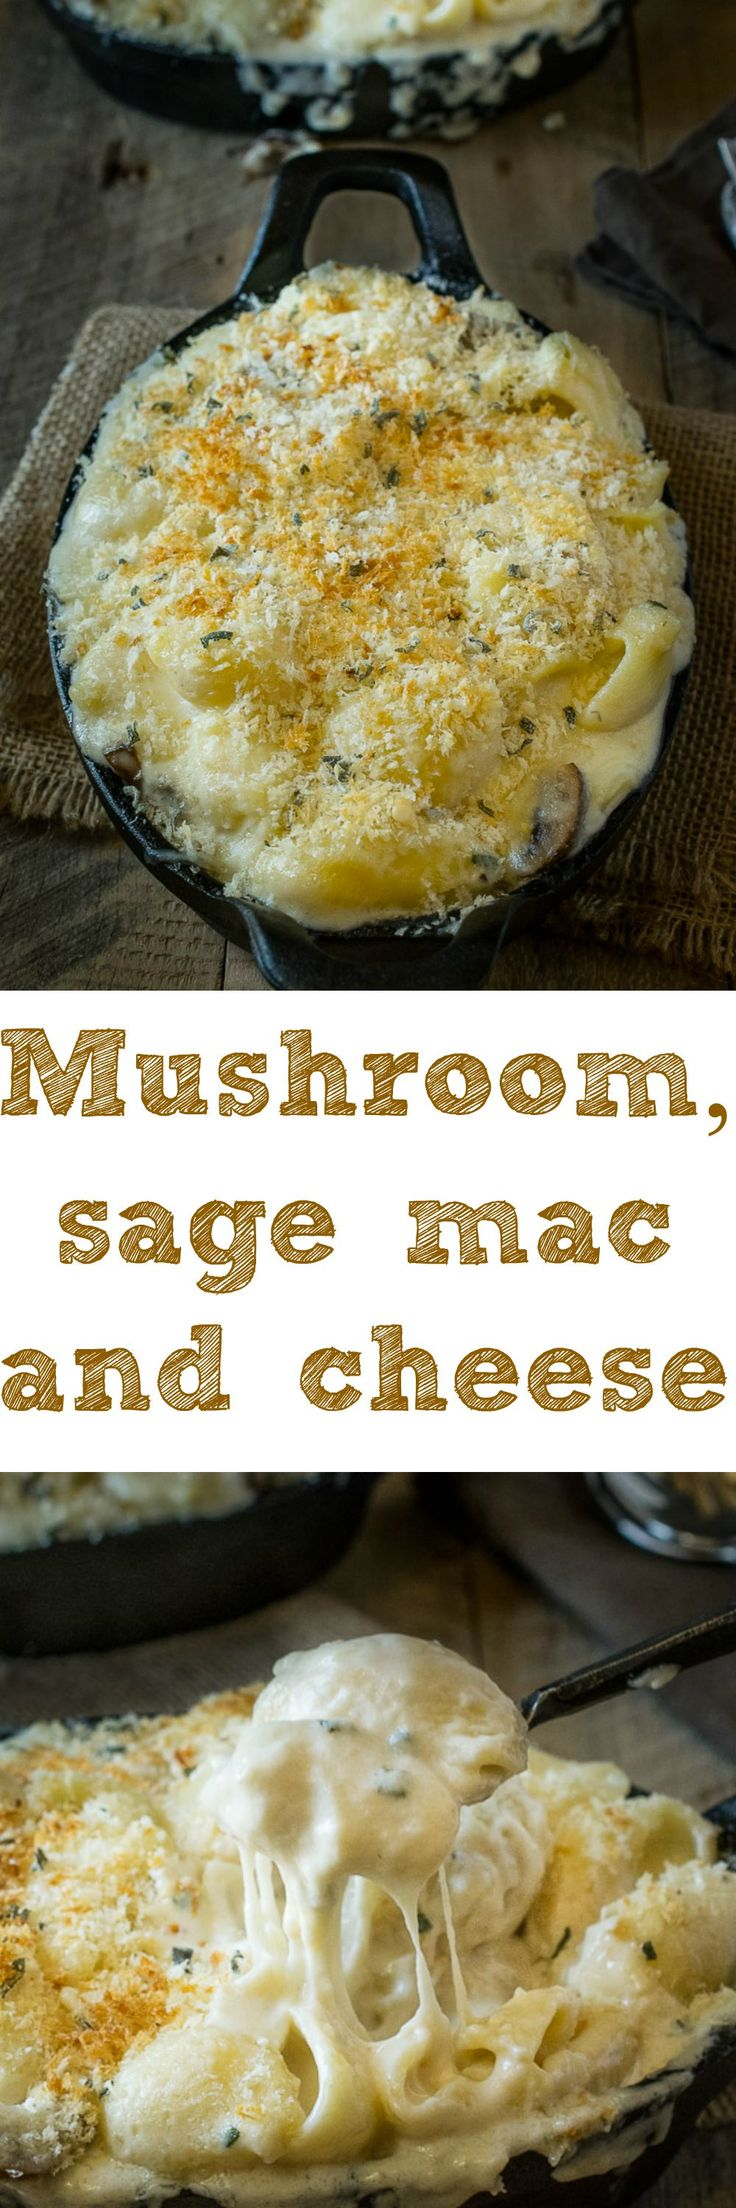 Mushroom sage, mac and cheese - Creamy, really creamy and gooey cheese sauce with a meaty bite from mushrooms, earthy flavor from fresh sage (for an essence of Fall) and a crunchy panko breadcrumb topping. It's comfort food taken to the next level.